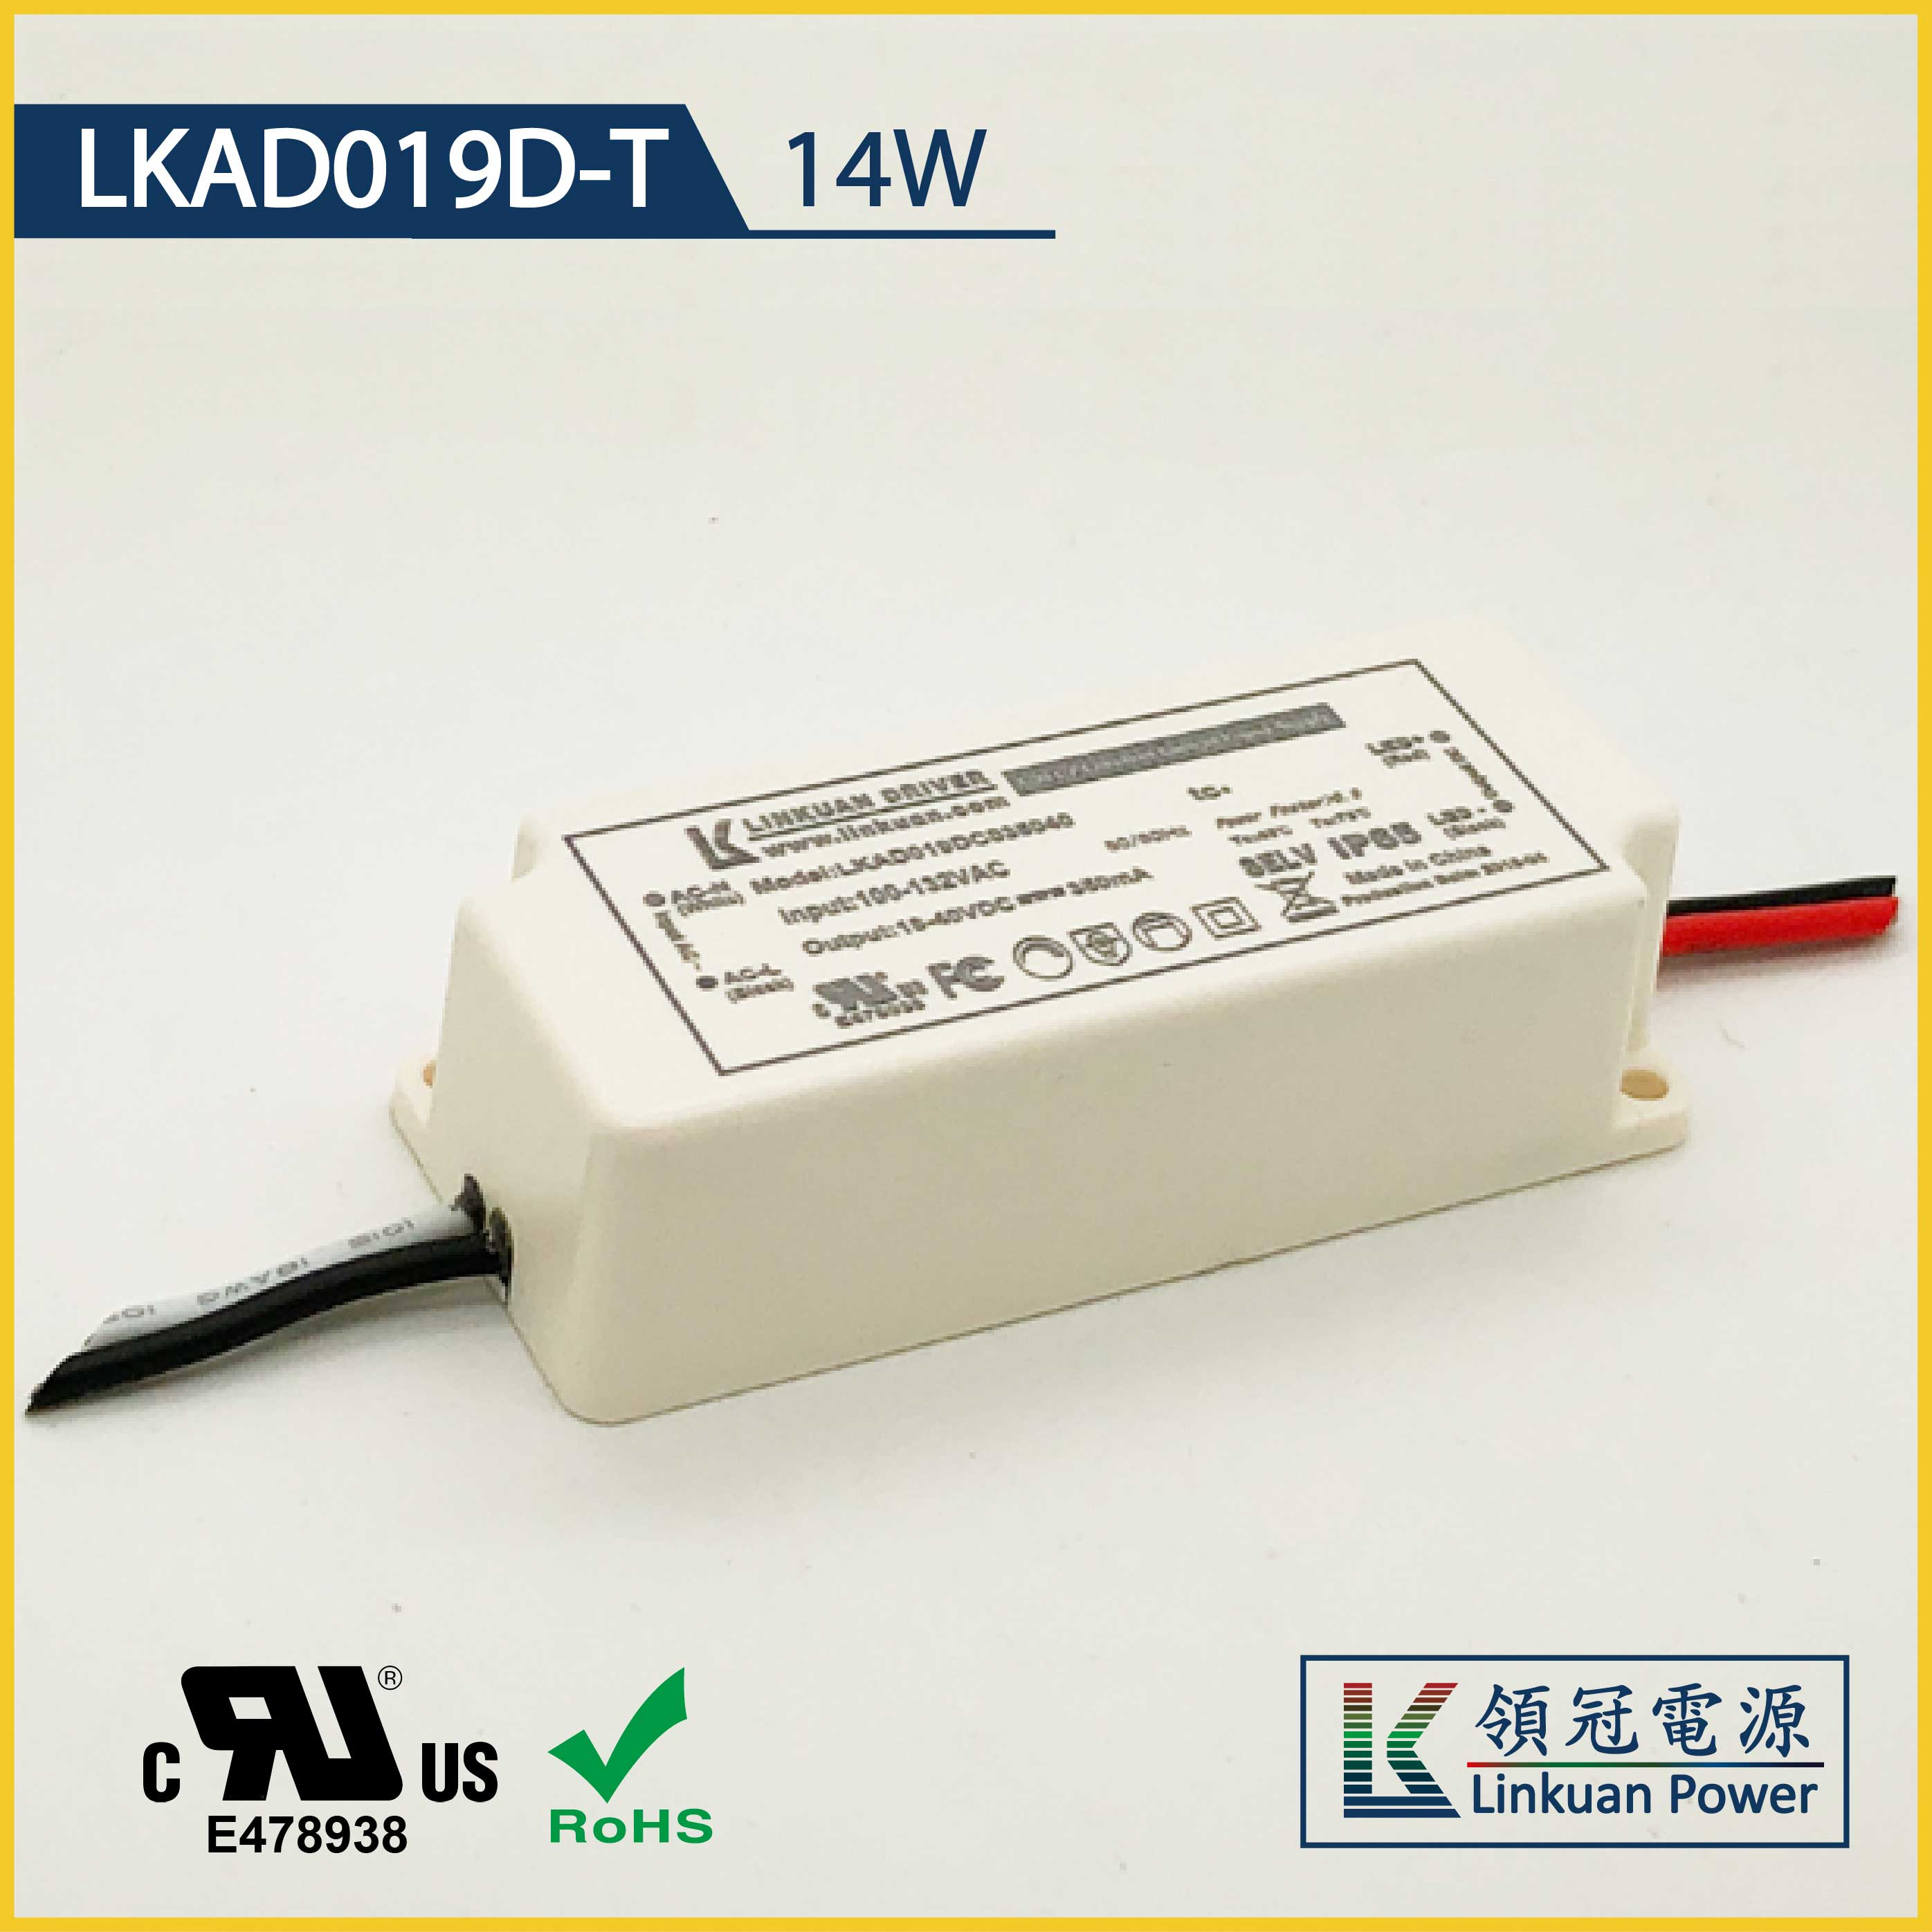 LKAD019D-T 14W 20-42V 330mA Dimmable LED drivers